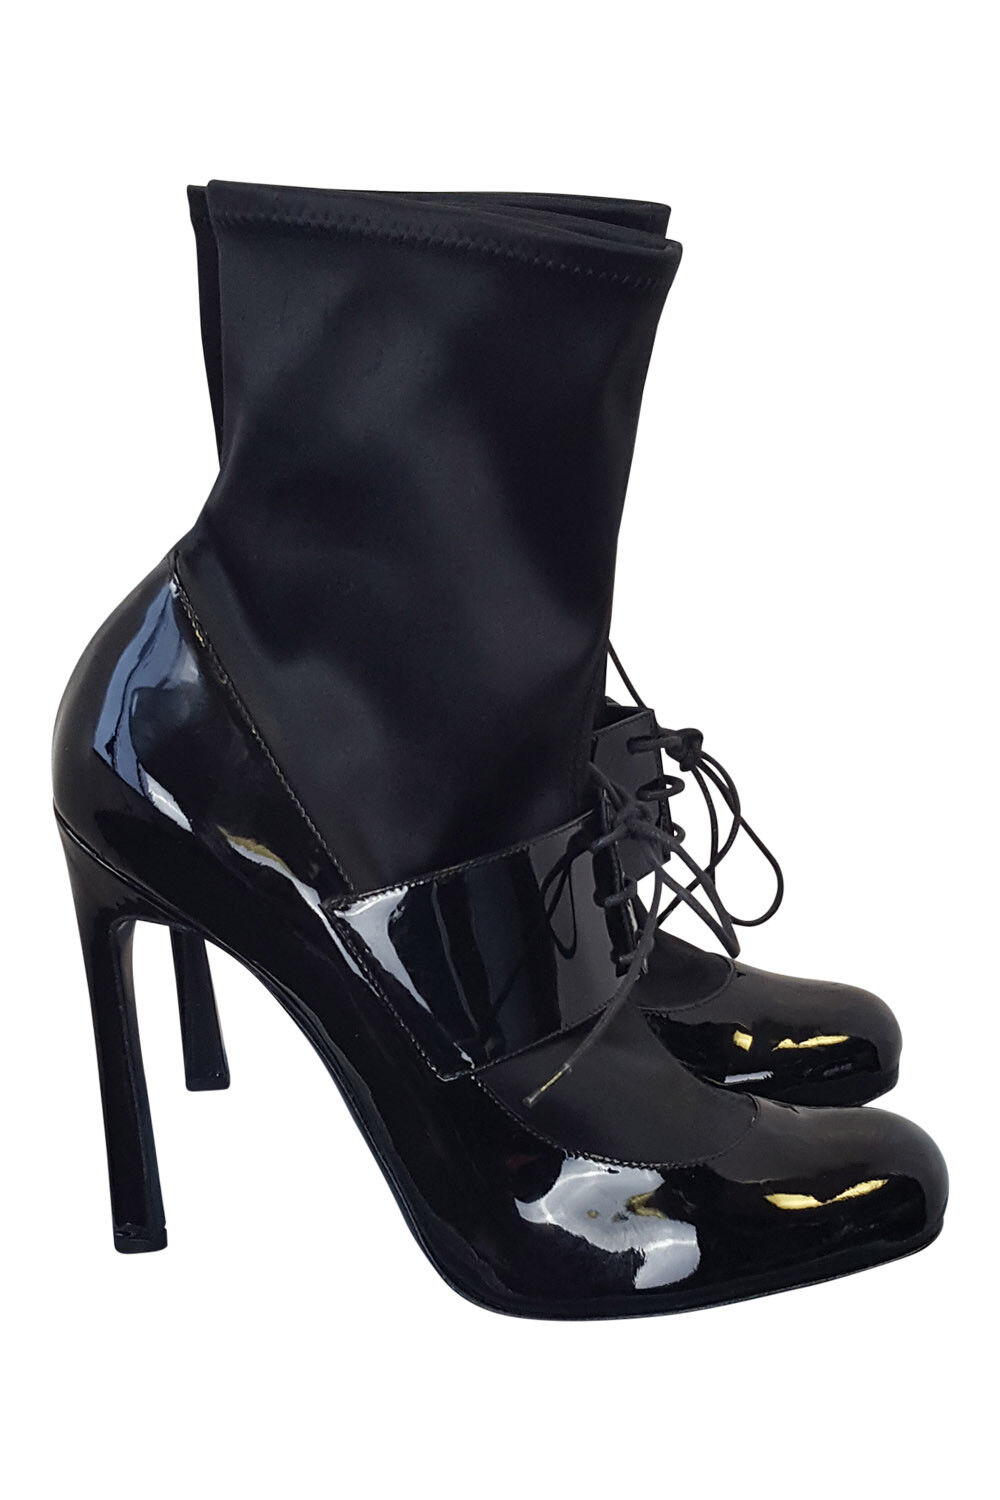 ARMANI BLACK LACE UP ANKLE BOOTS (40)